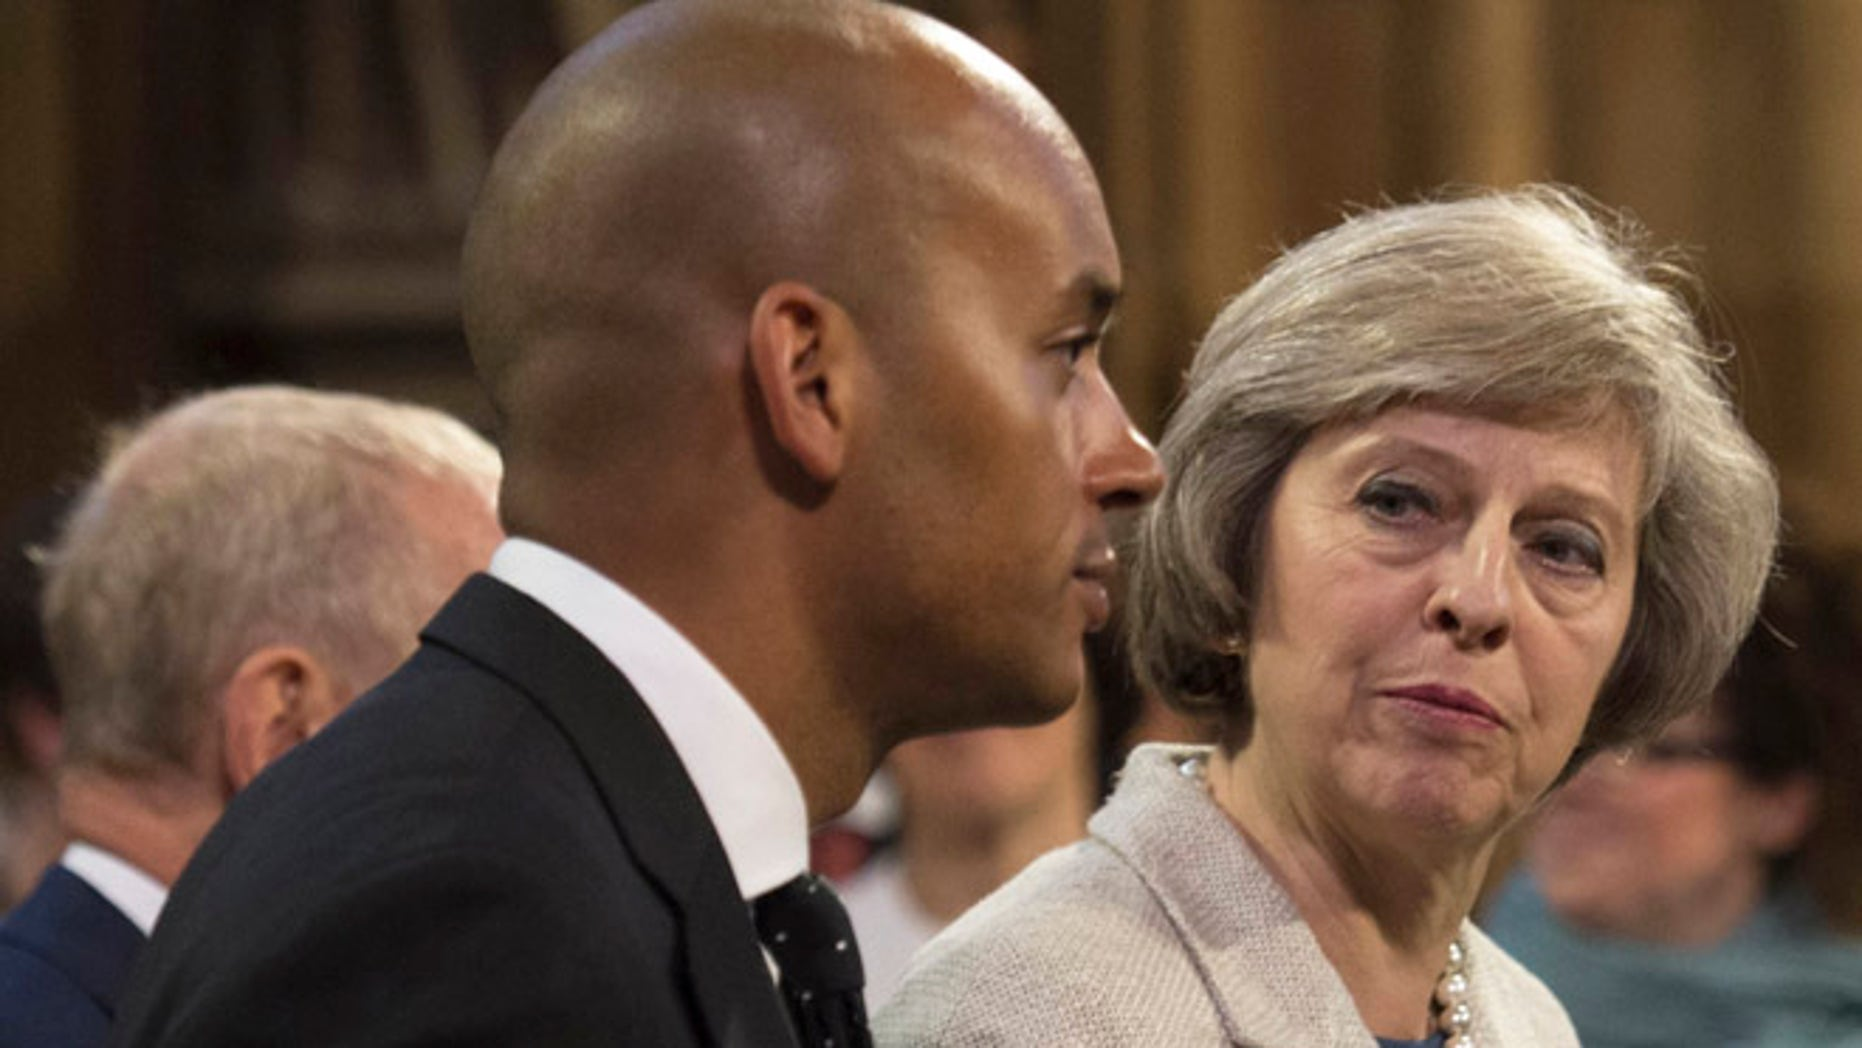 May 18, 2016: Home Secretary Theresa May and Labour MP Chuka Umunna pass through the Central Lobby for the State Opening of Parliament at the Palace of Westminster in London, Britain.